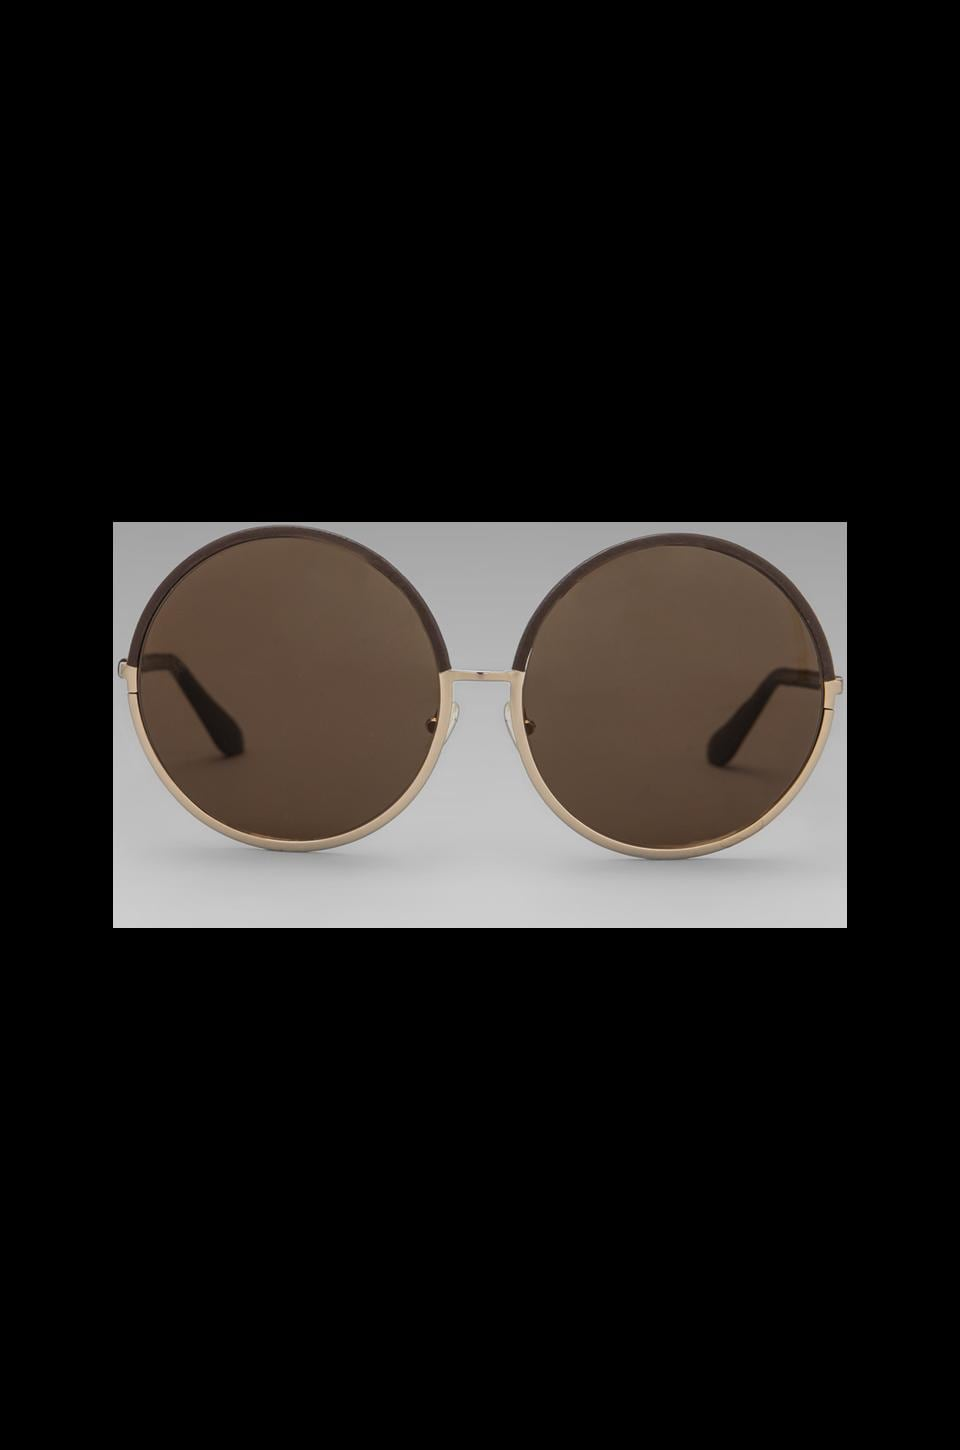 House of Harlow 1960 House of Harlow Imagine Sunglasses in Brown